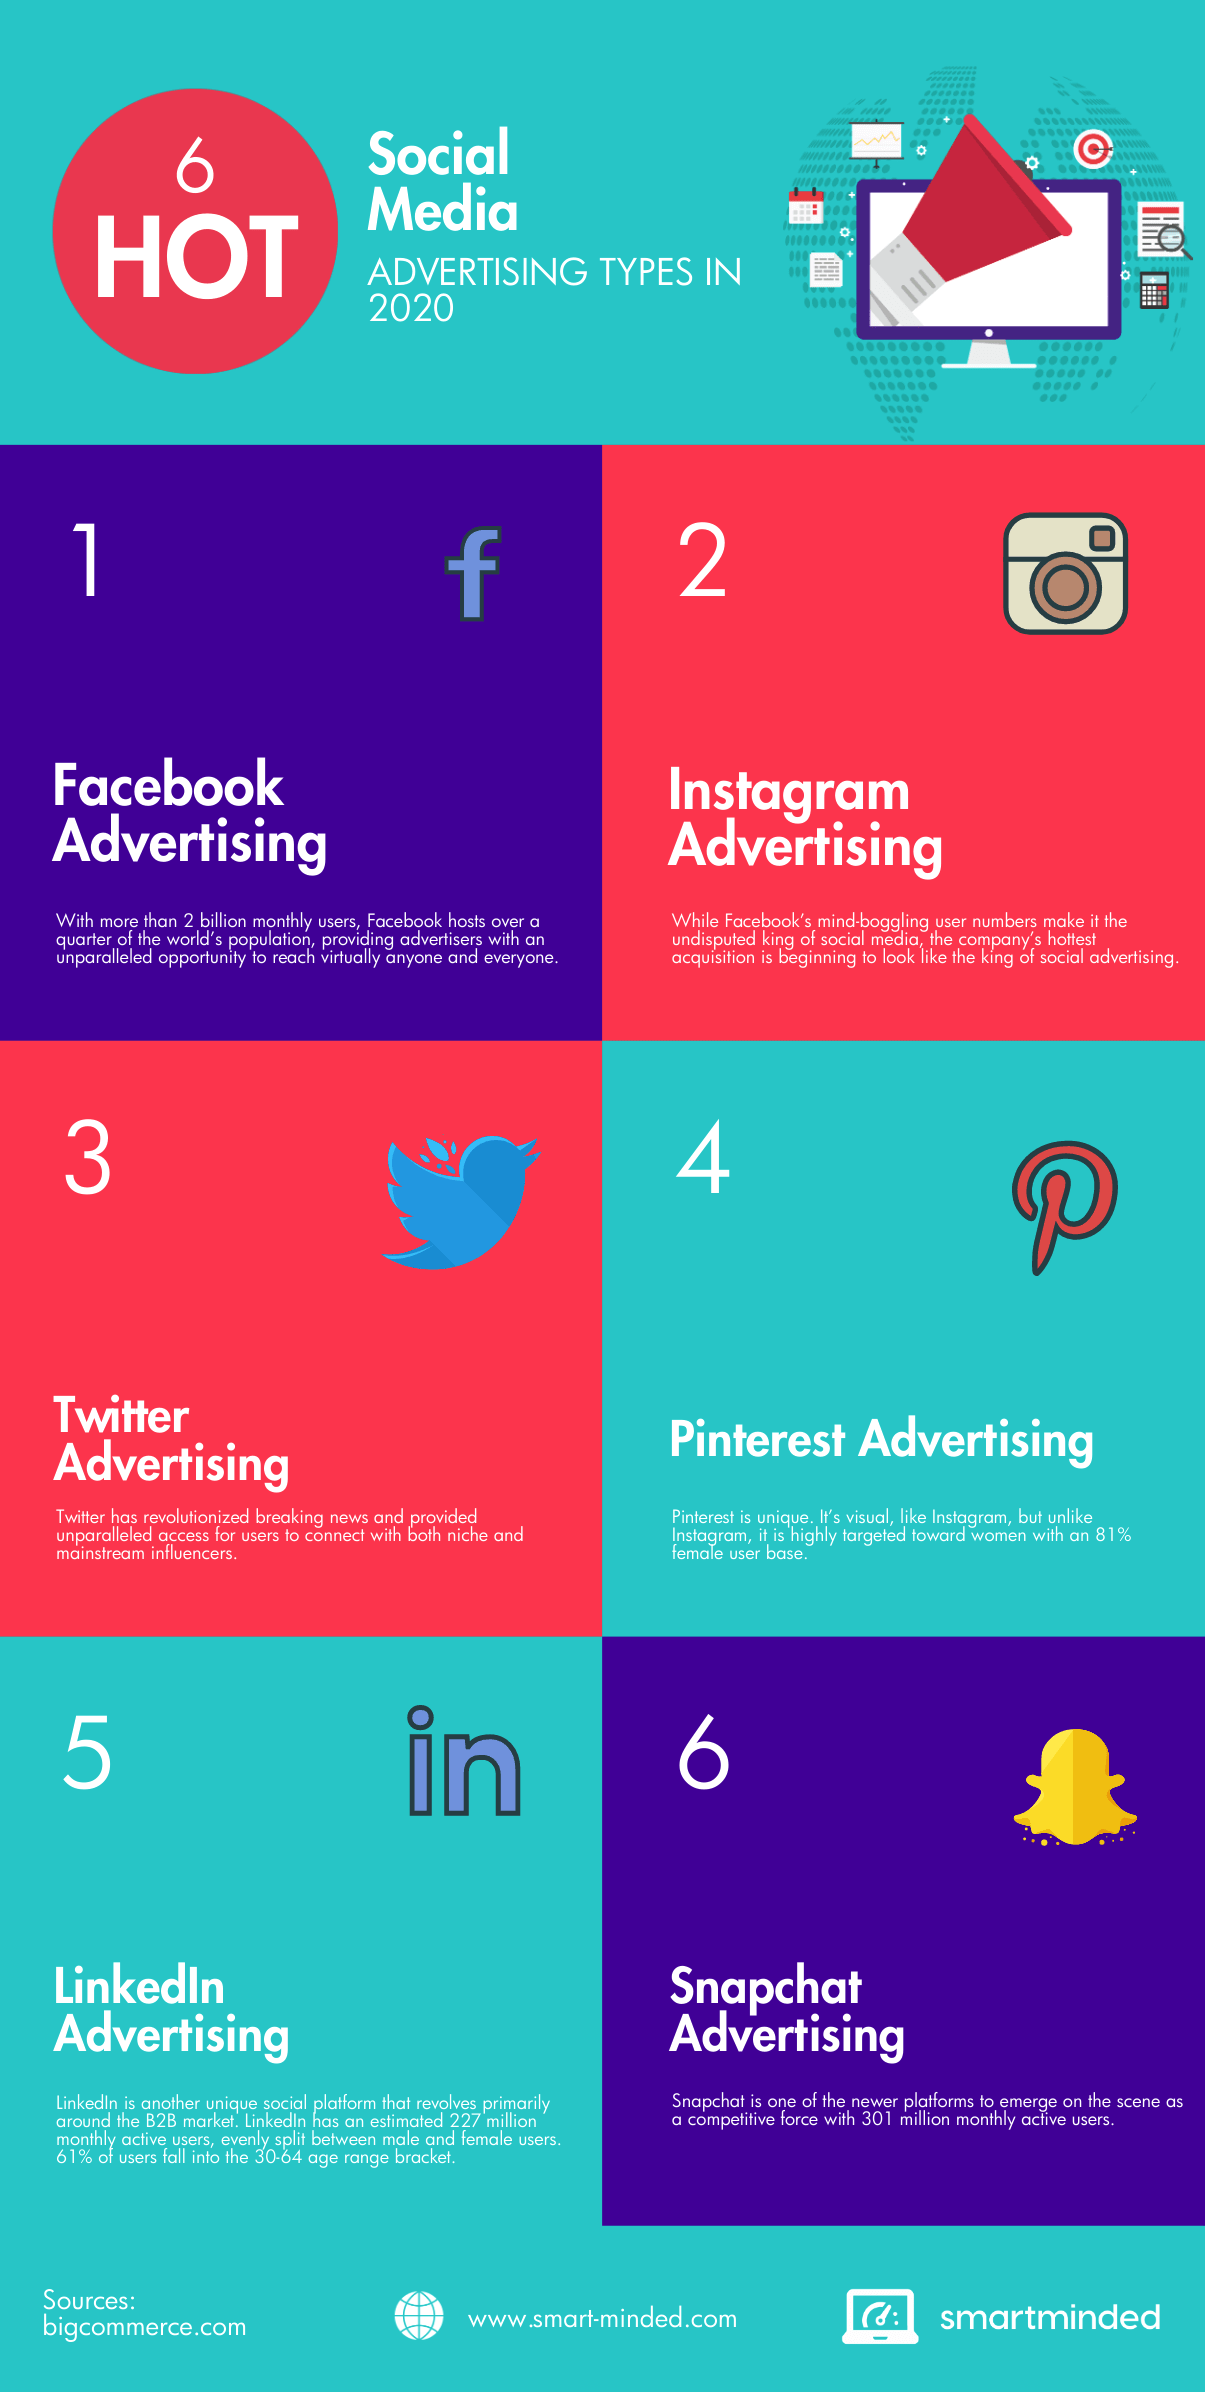 Social Media Ad Channels